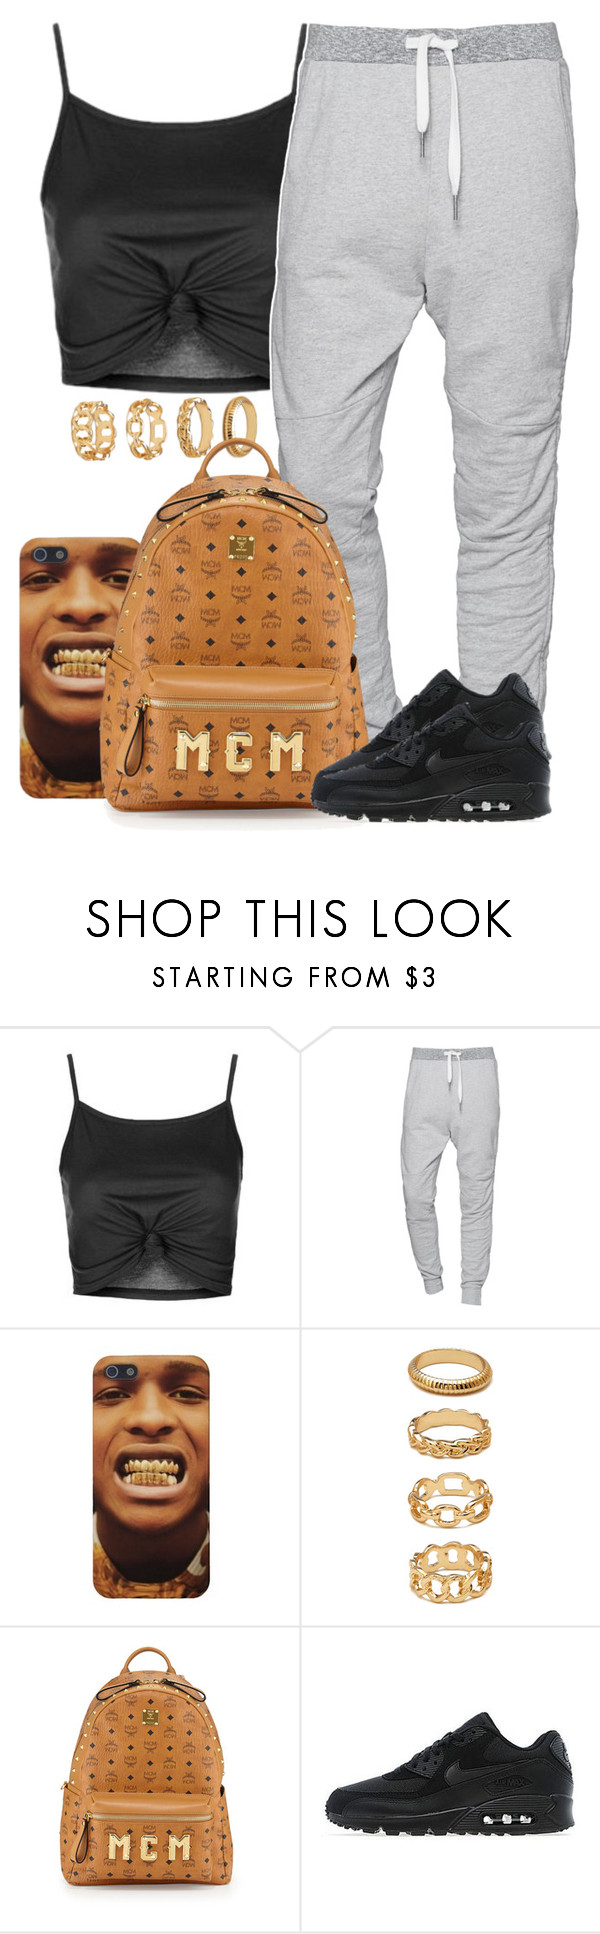 """Sans titre #352"" by lesliekabengele on Polyvore featuring mode, Topshop, True Religion, Forever 21, MCM et NIKE"